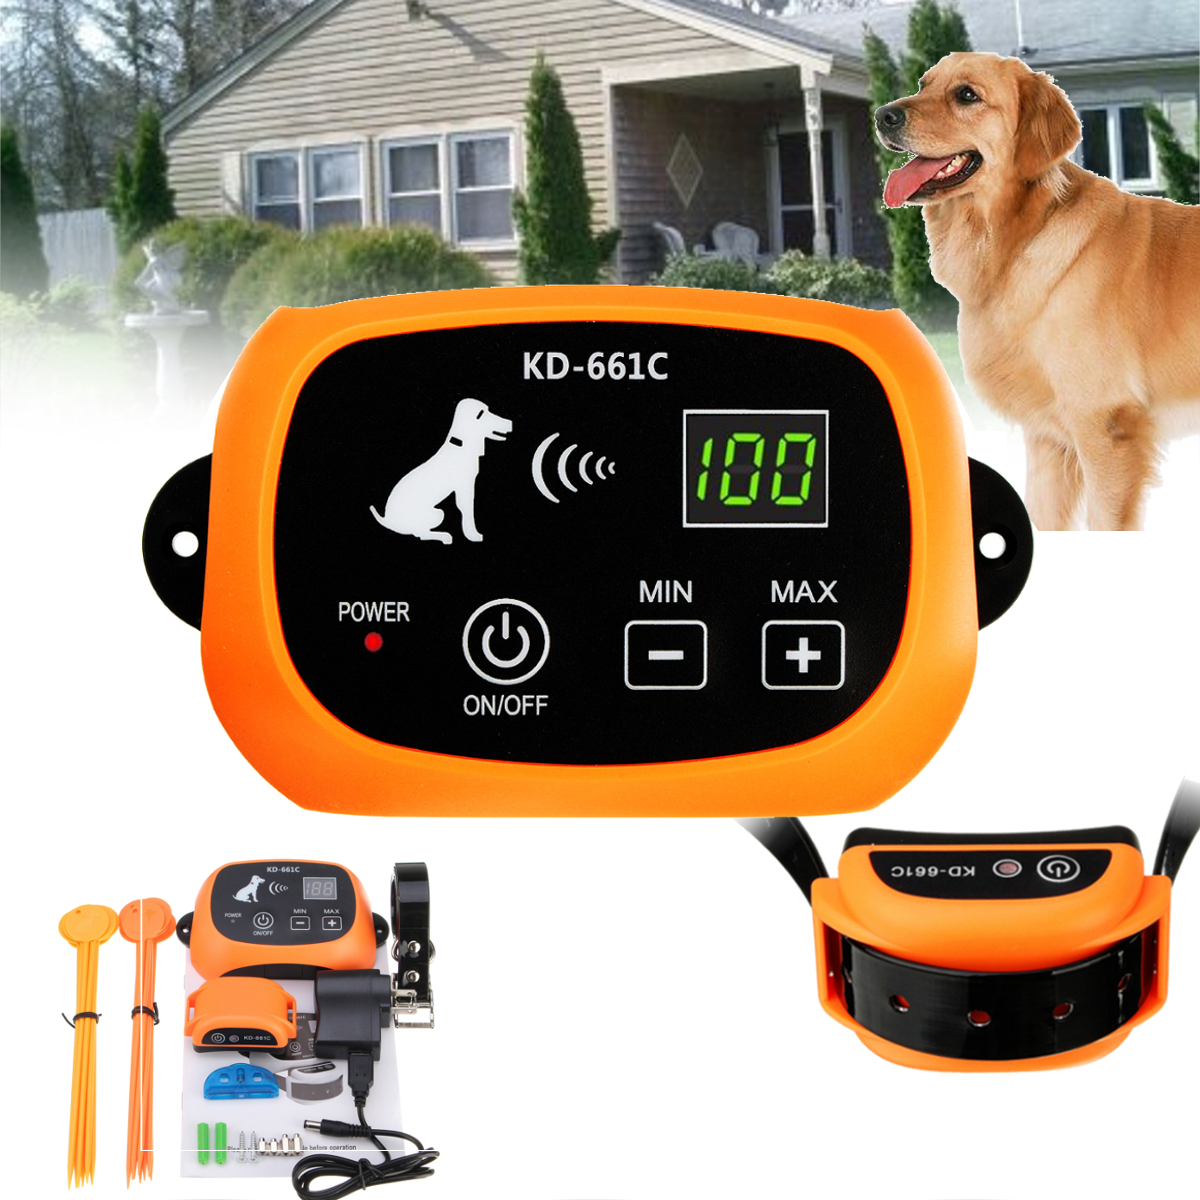 Pet Fence Dog Undergroud Electric Fencing System Wireless 1 to 3 Dog Fence NoWire Pet Containment System Rechargeable Tool Set pet attire sparkles dog collar 8 12in pink